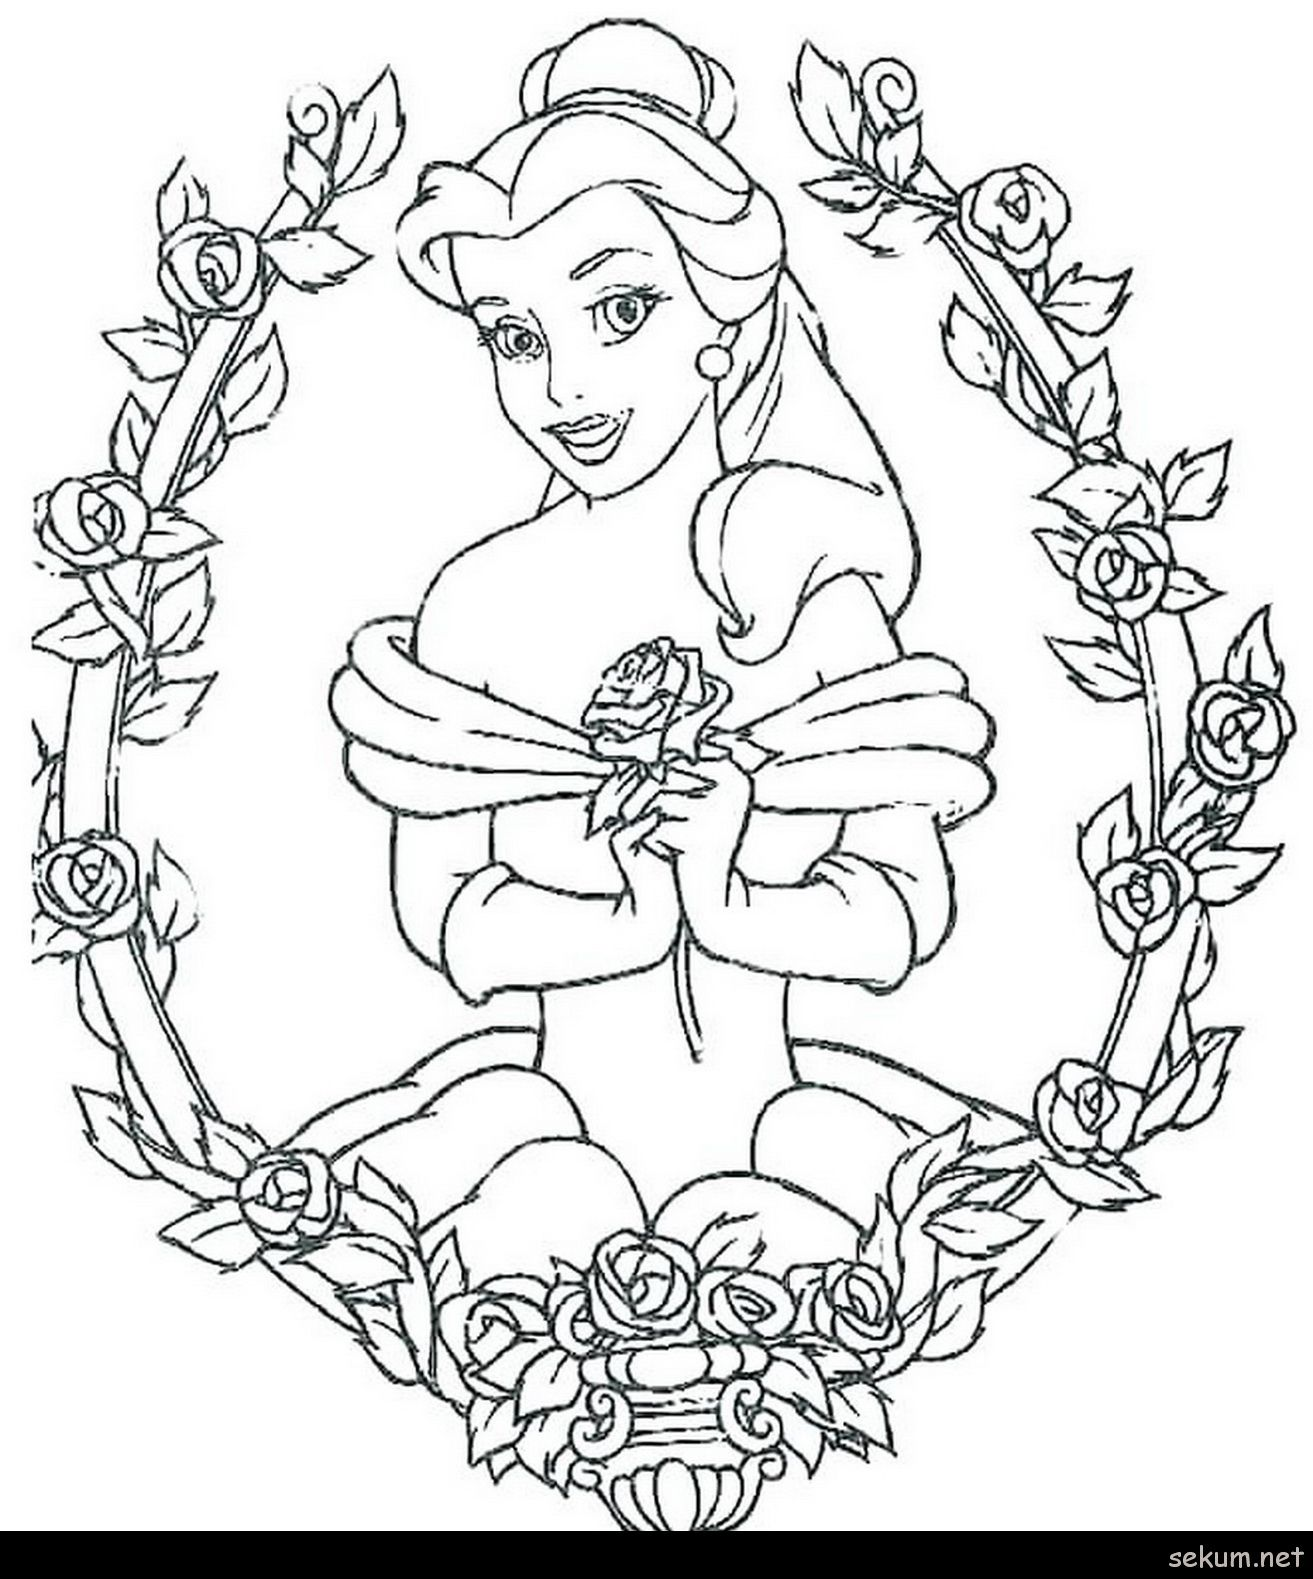 Pin By Supersonicglitchy4 On Animation Princess Coloring Pages Disney Coloring Pages Belle Coloring Pages